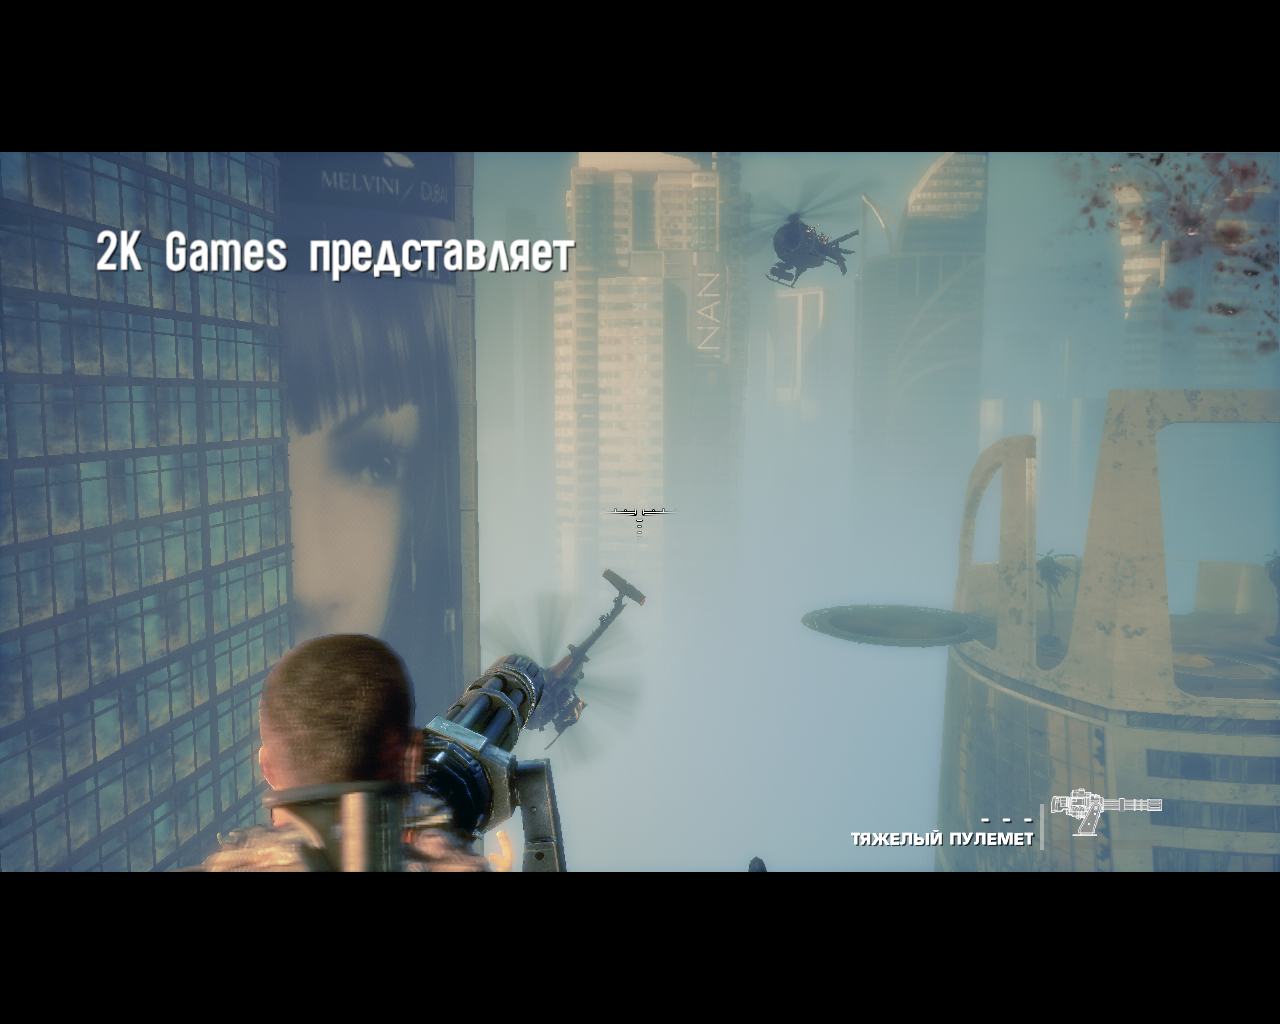 Spec Ops: The Line Windows 2K Games presents (Russian version)